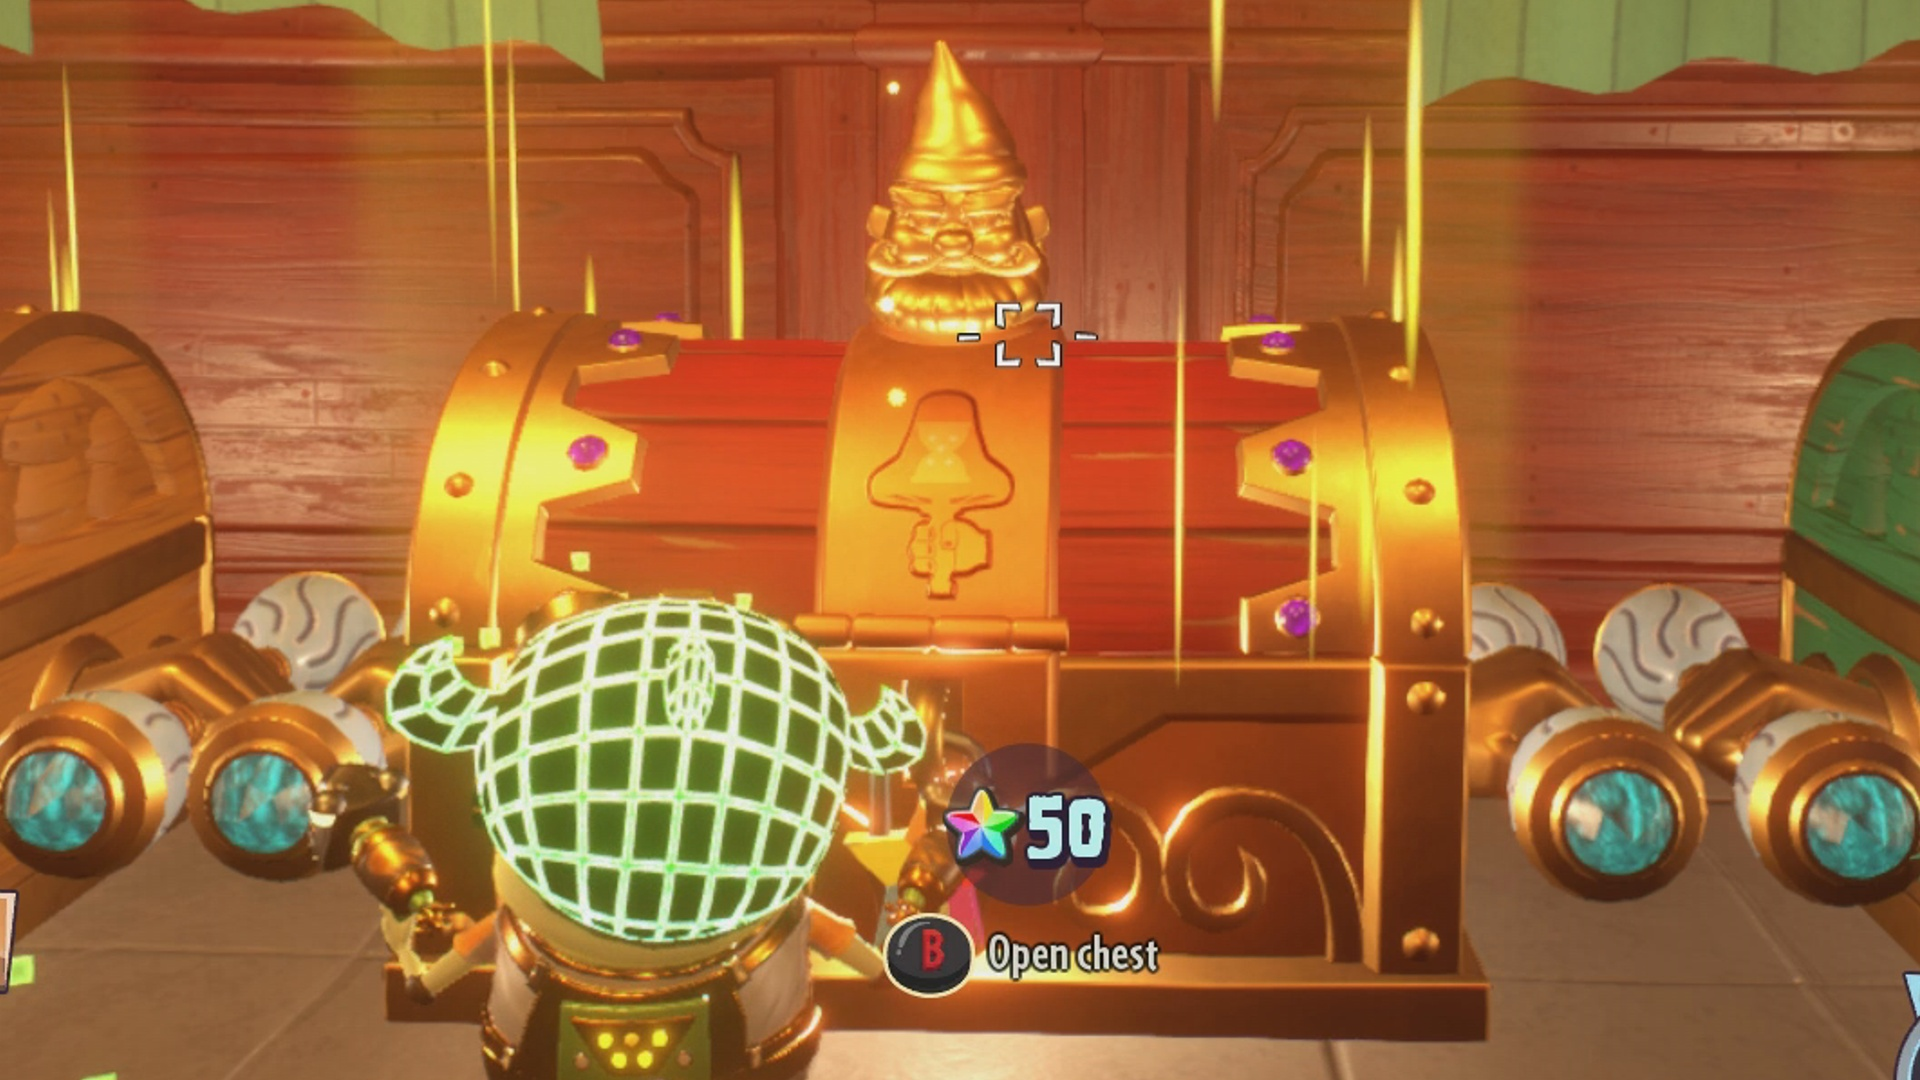 PvZ: Garden Warfare 2 - How to Get Rainbow Stars | LevelCamp